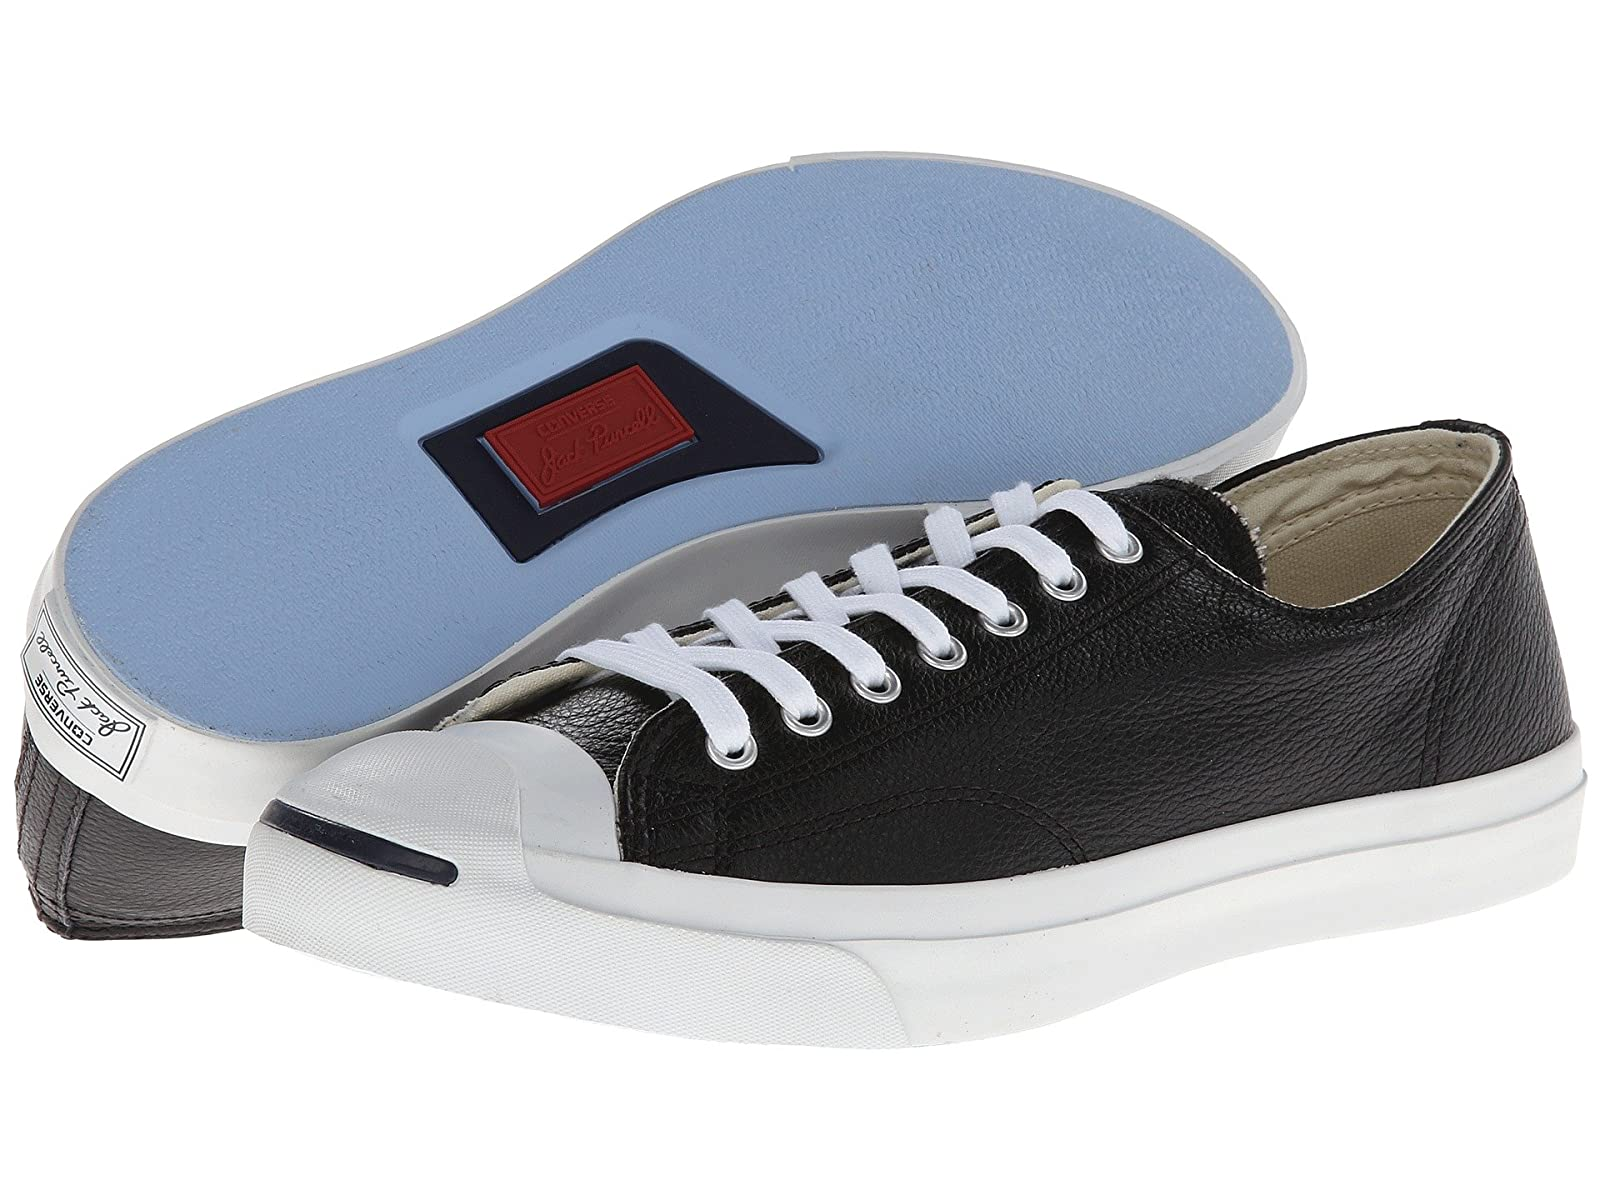 Converse Jack Purcell® LeatherAtmospheric grades have affordable shoes